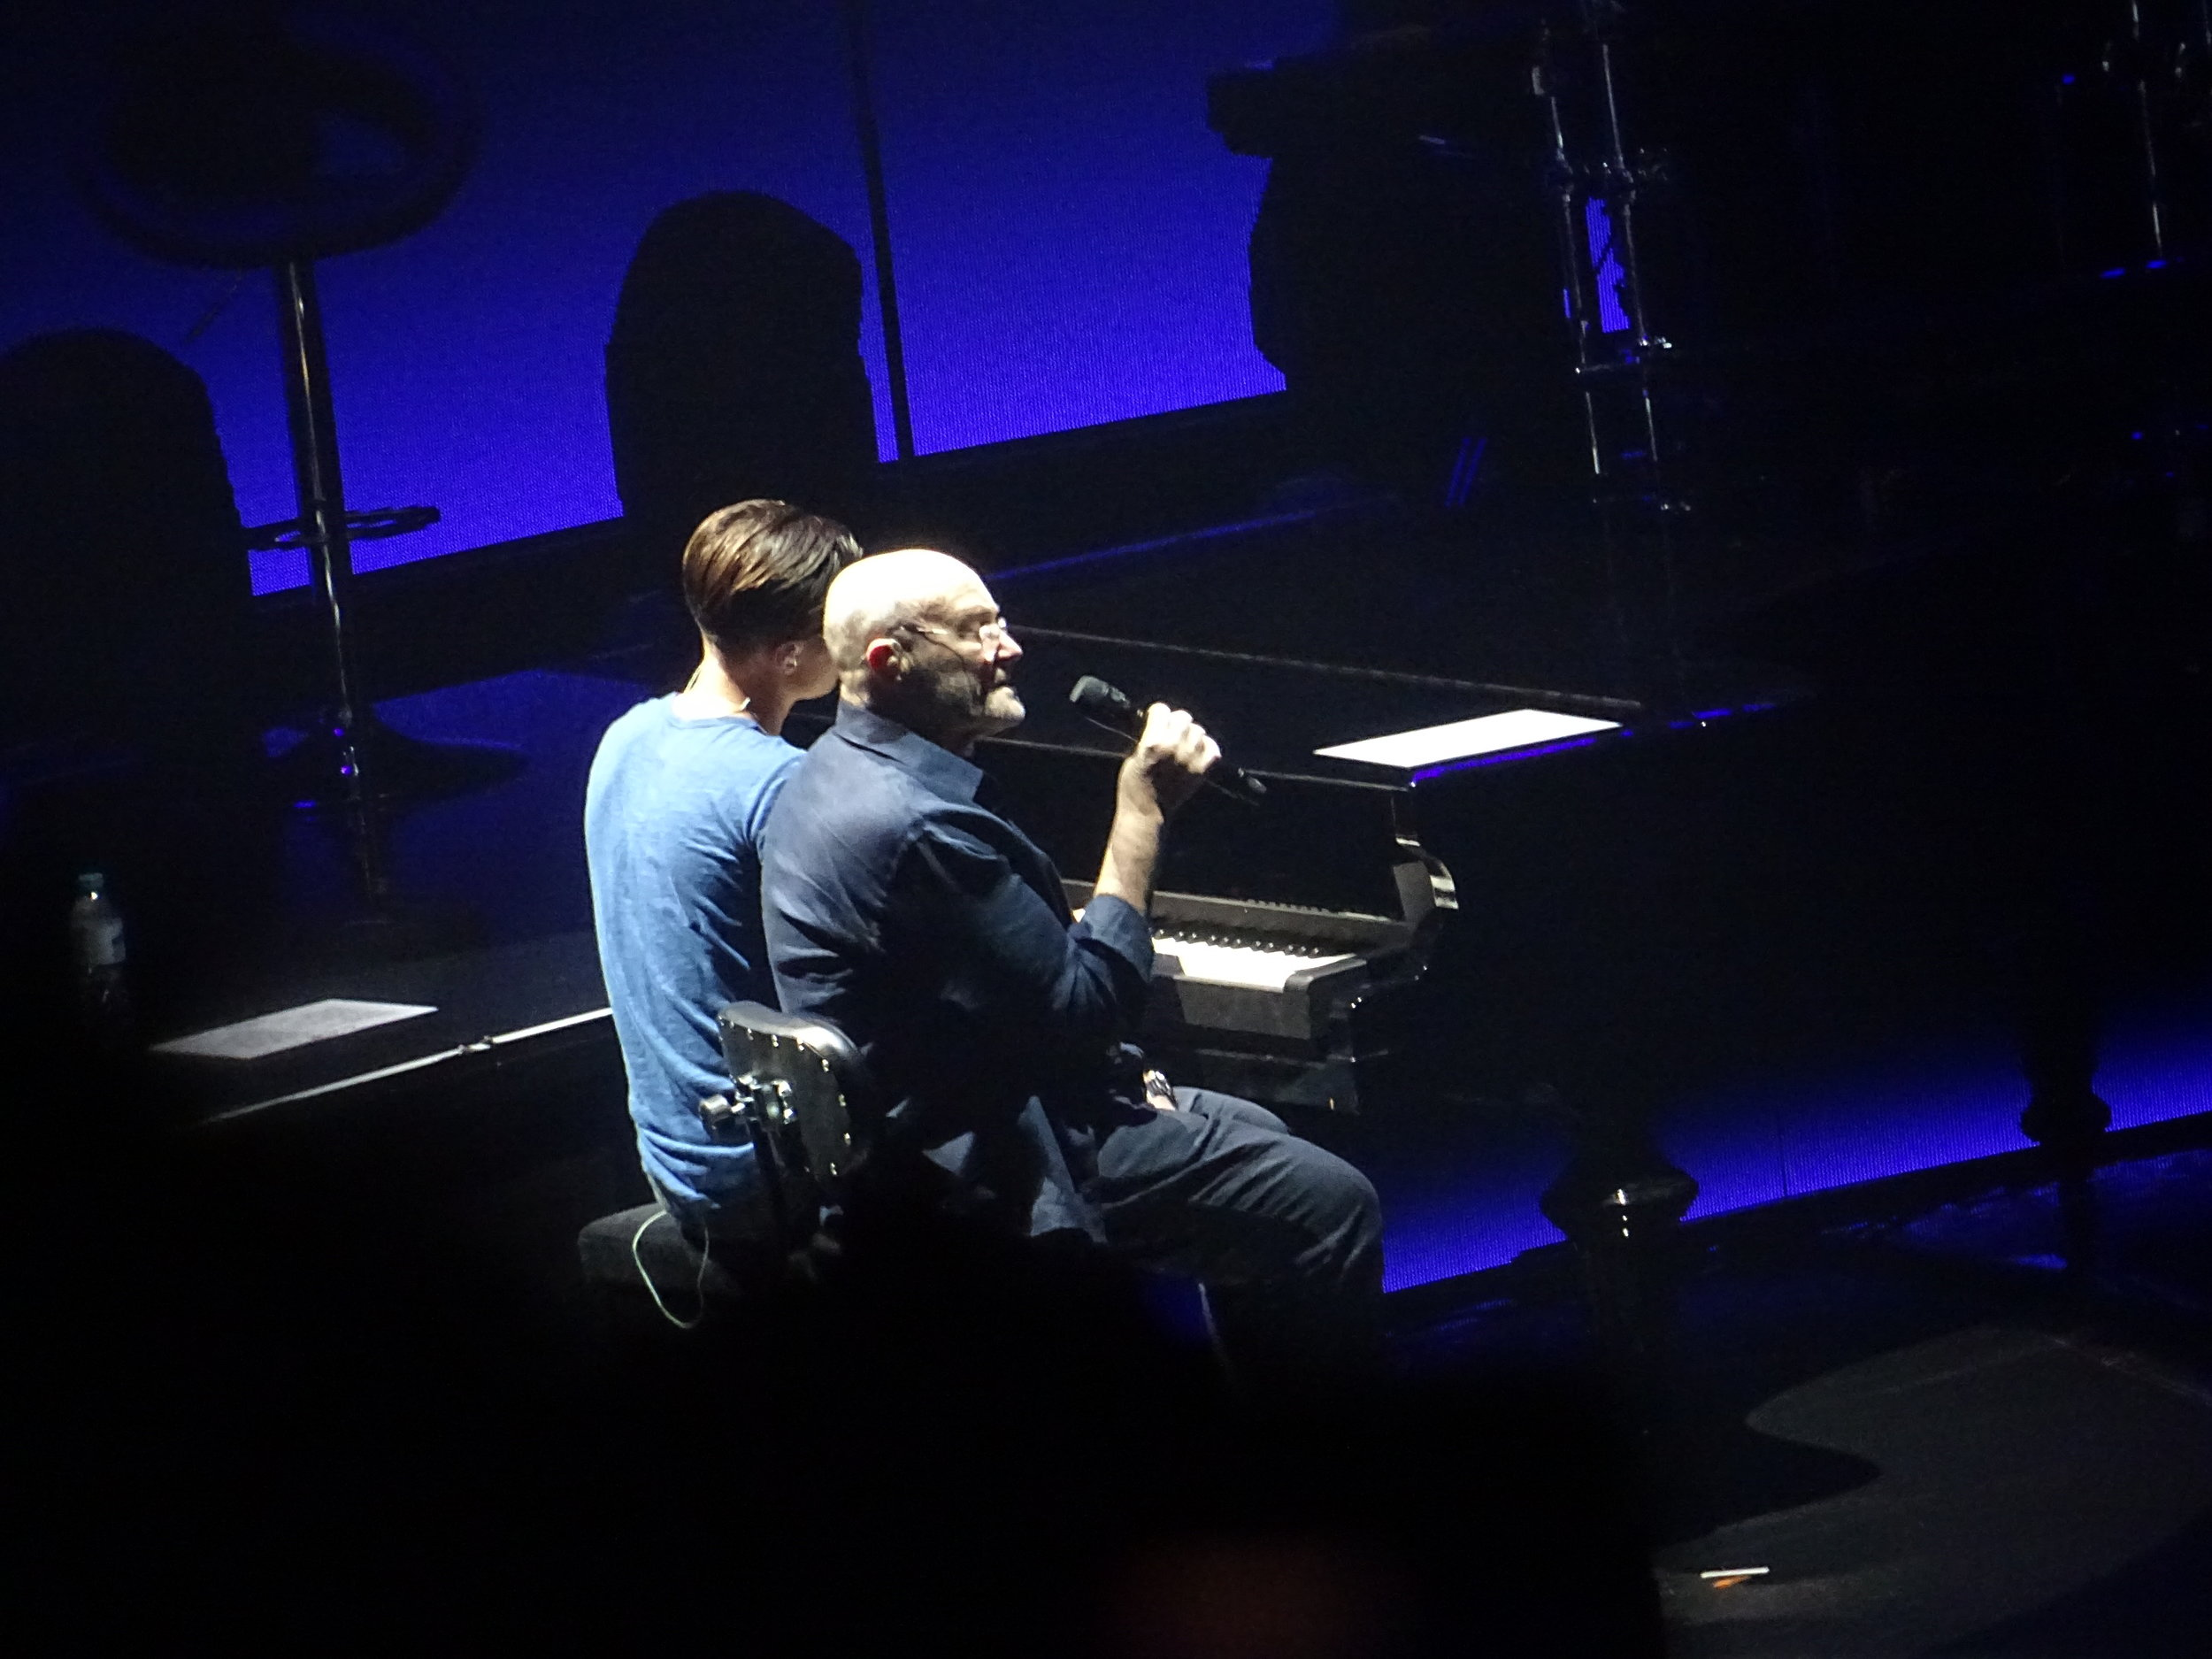 """Phil and Nic perform an emotional duet of """"You Know What I Mean"""" (c) Philip Giouras @ The Perfect Tempo"""